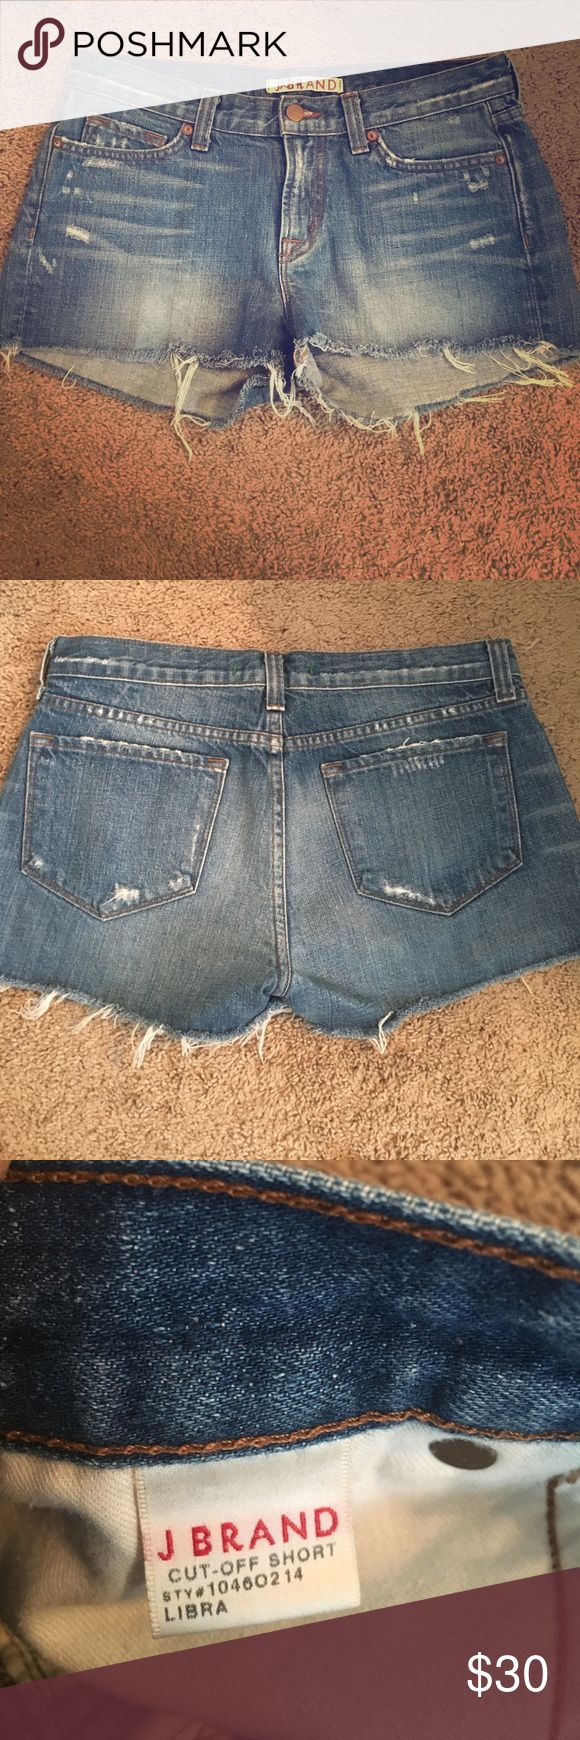 J Brand Cut-Off Denim Shorts - Size 28 J Brand Cut-Off Denim Shorts - Like New! Size 28, Style #10460214, Color Libra, 100% cotton, Retail $125. Never been worn, in excellent condition. I got them from someone in merchandising so they have initials written on the inside tag. J Brand Shorts Jean Shorts